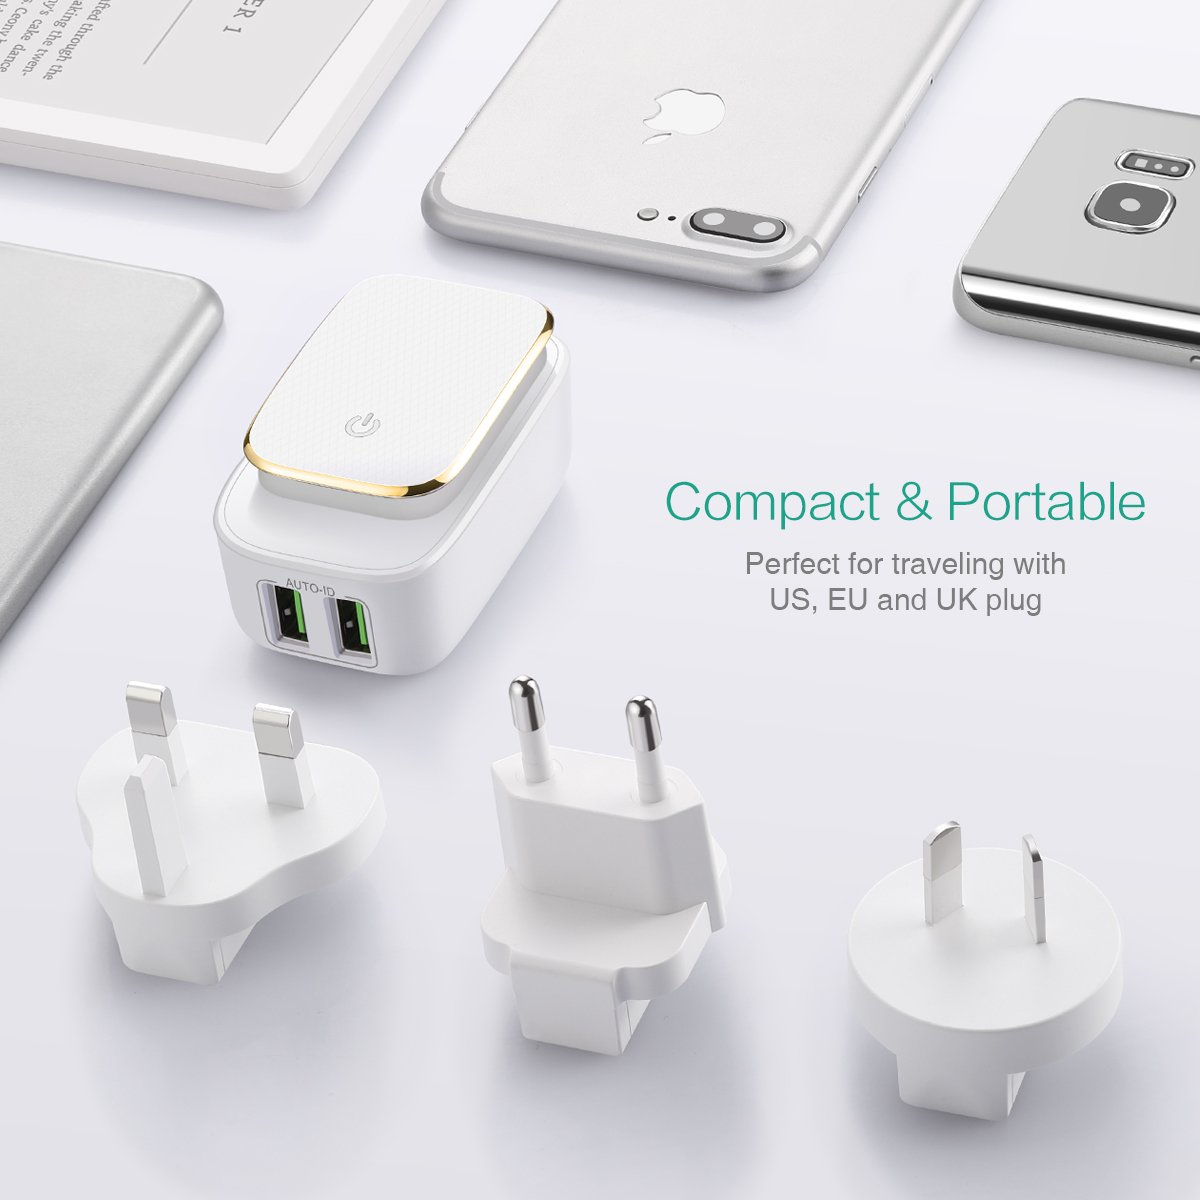 Tablet PC etc. Smart Phones /&Other Digital Cameras iPad 3 Interchangeable UK//AU//EU Plug for iPhone 12W//2.4A Wall Charger with LED Touch Night Light 2 USB Ports Plug Charger Oria Travel Adapter